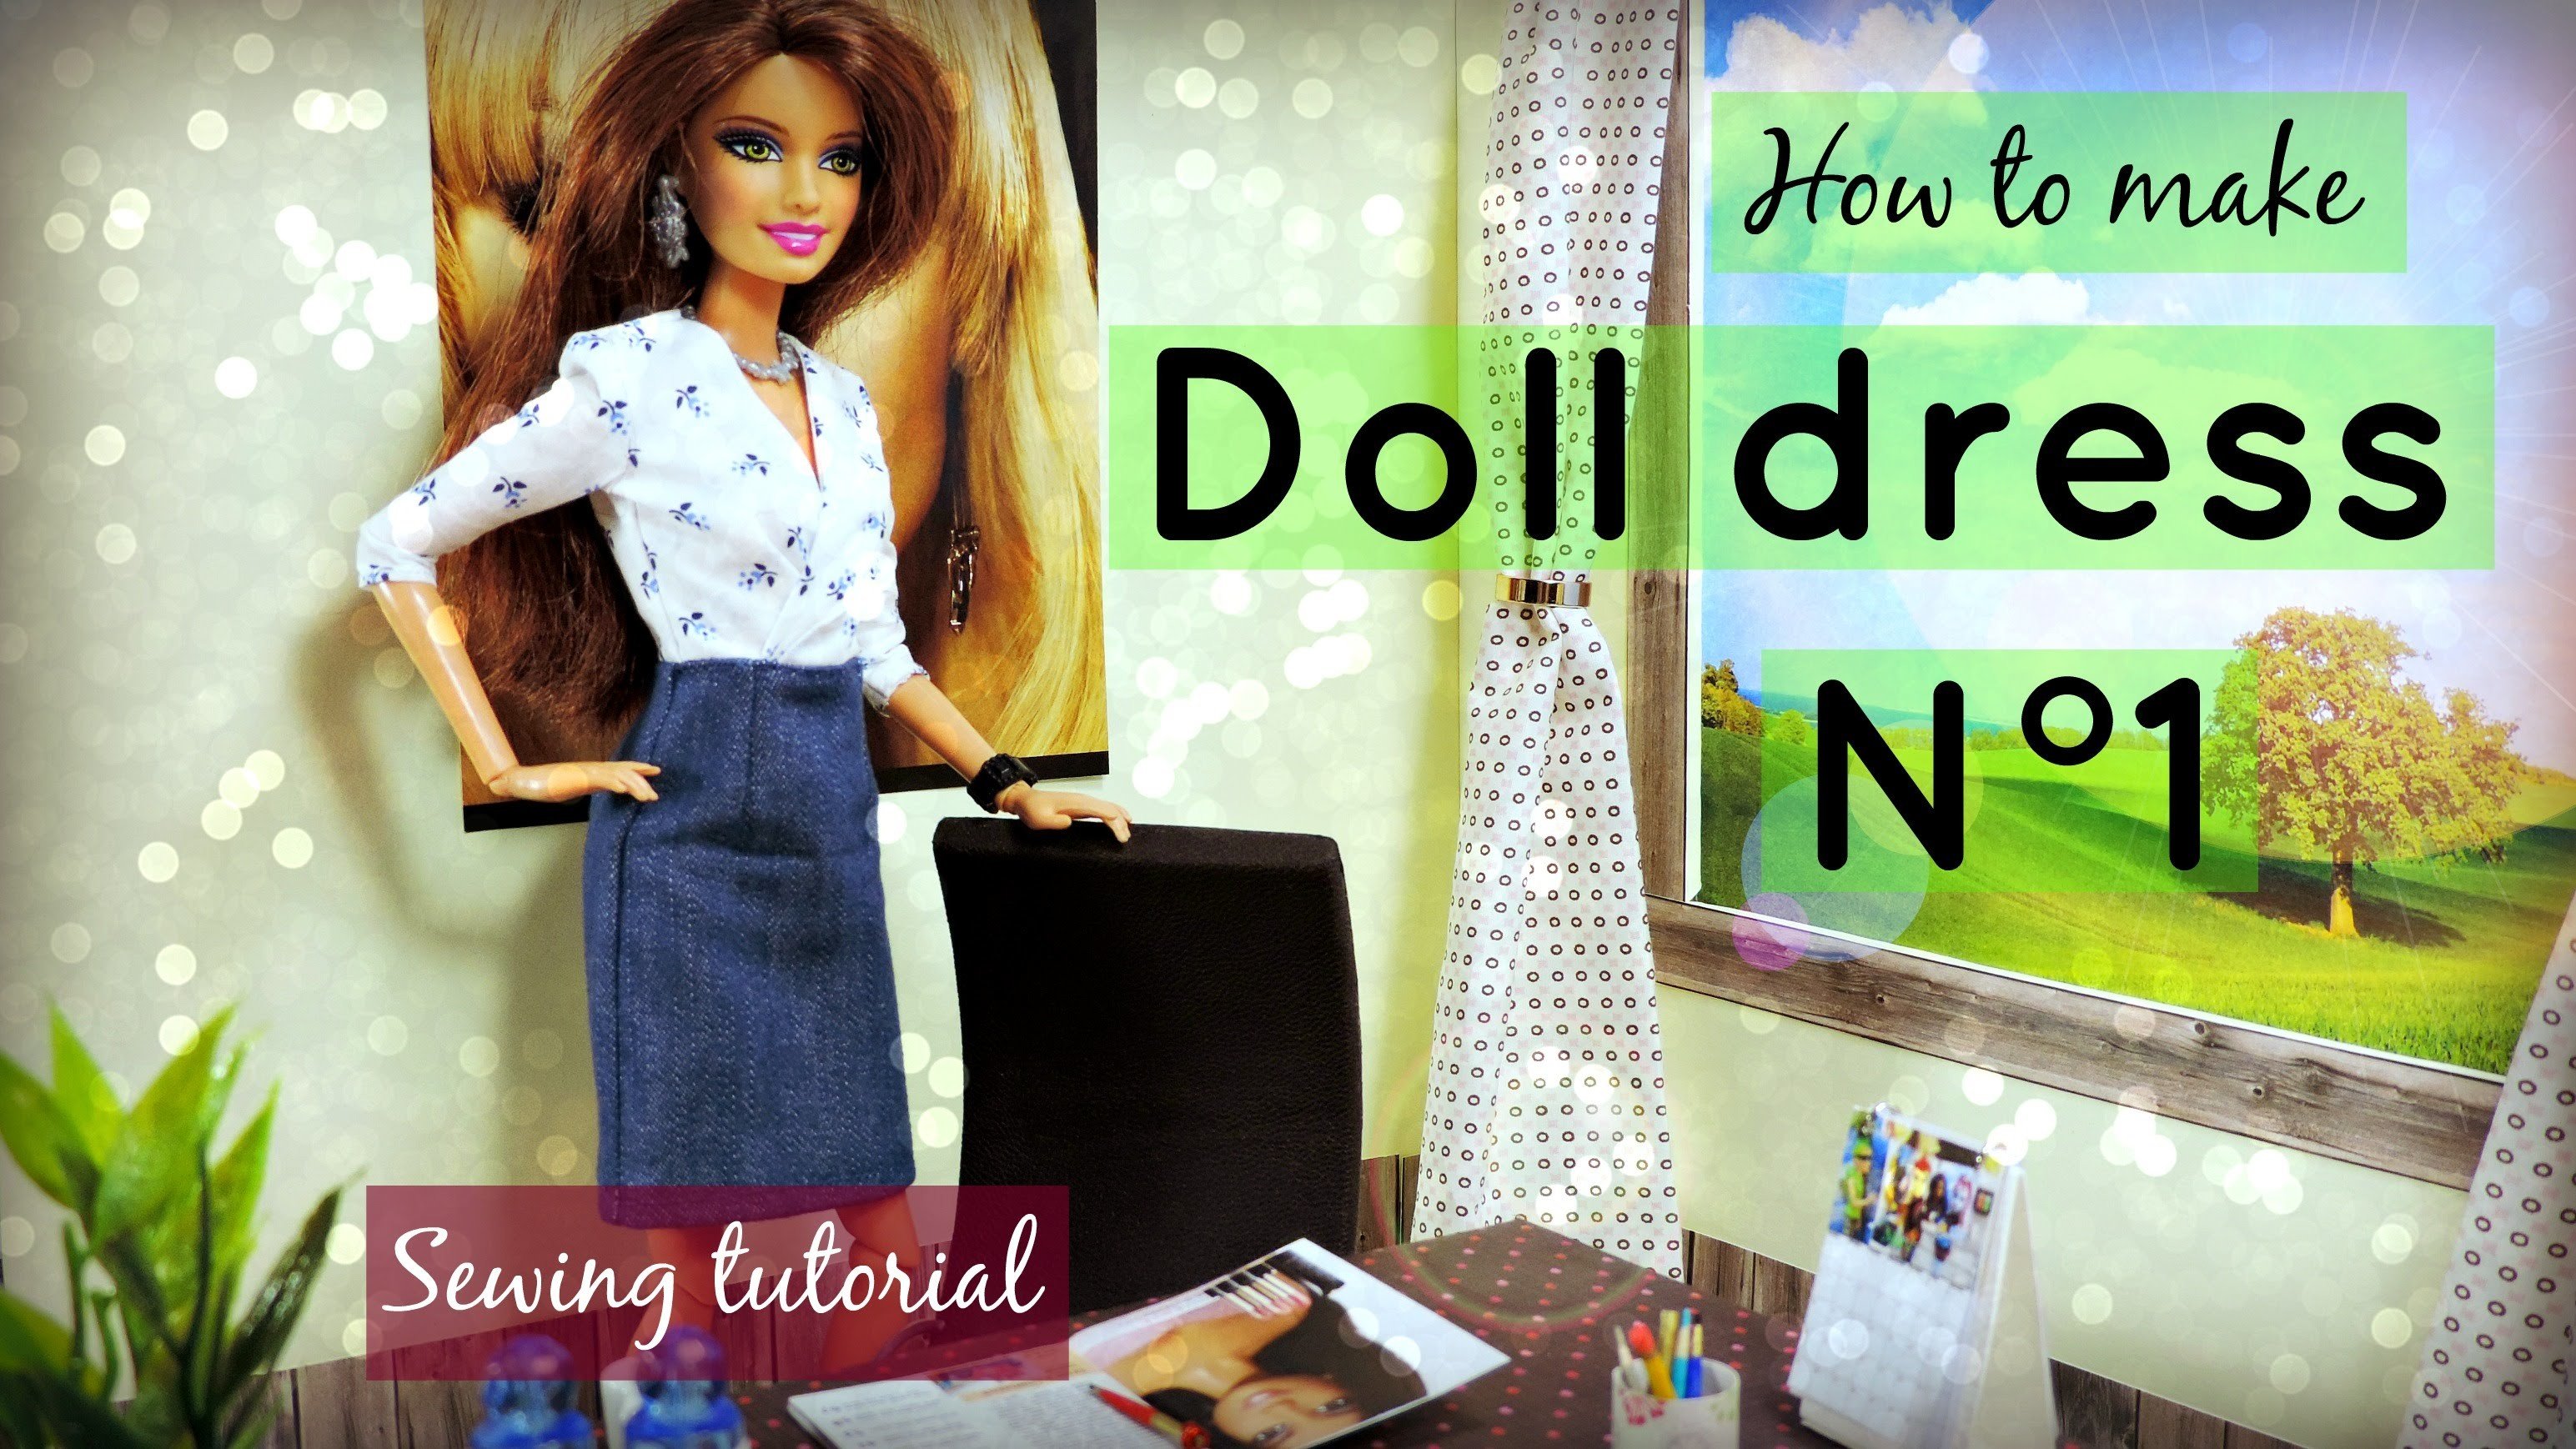 How to make doll dress N°1